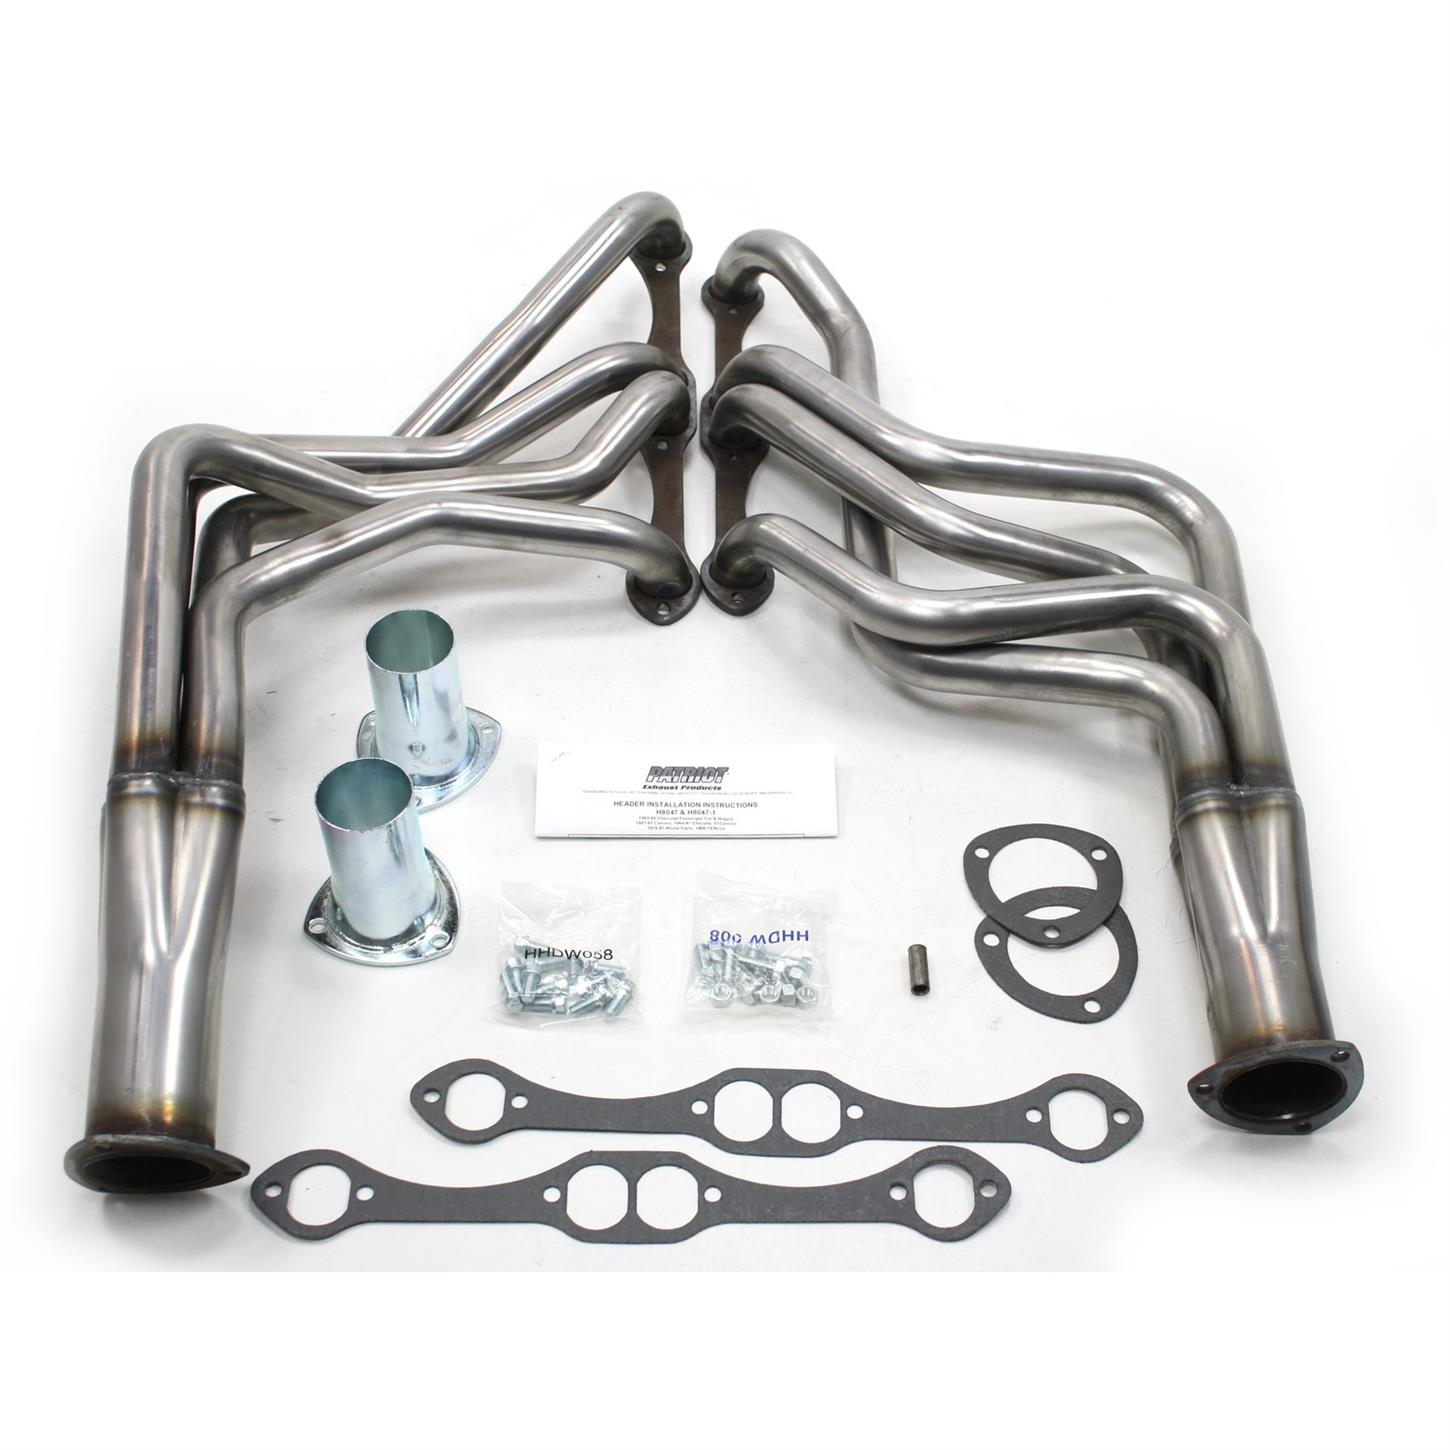 Patriot Set of 2 Headers New for Chevy Chevrolet Camaro Malibu Monte H8021